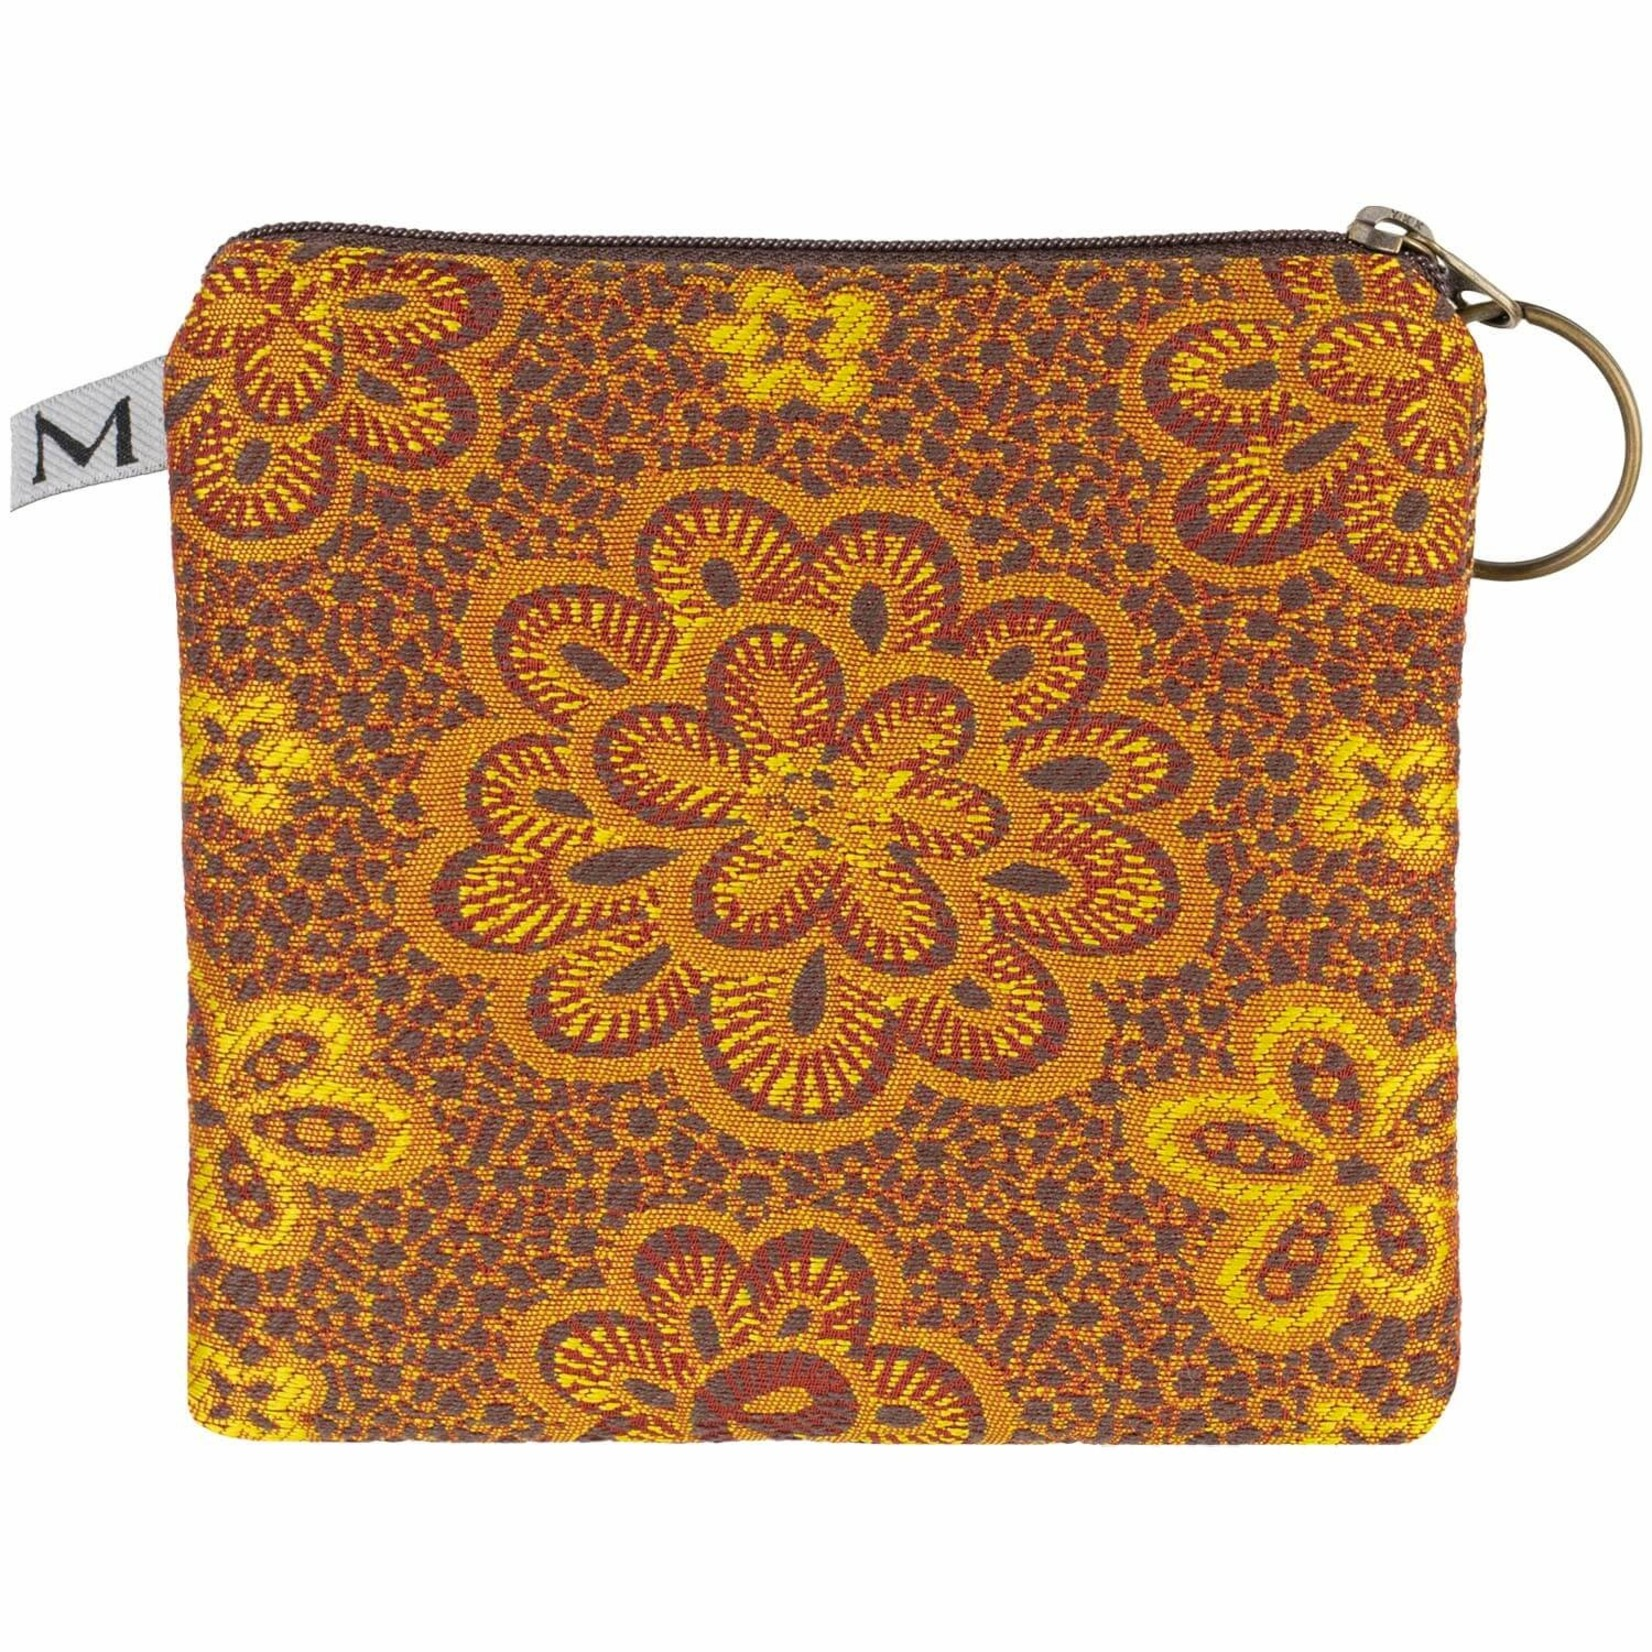 Maruca Roo Pouch FW21 - Forest Flower Gold